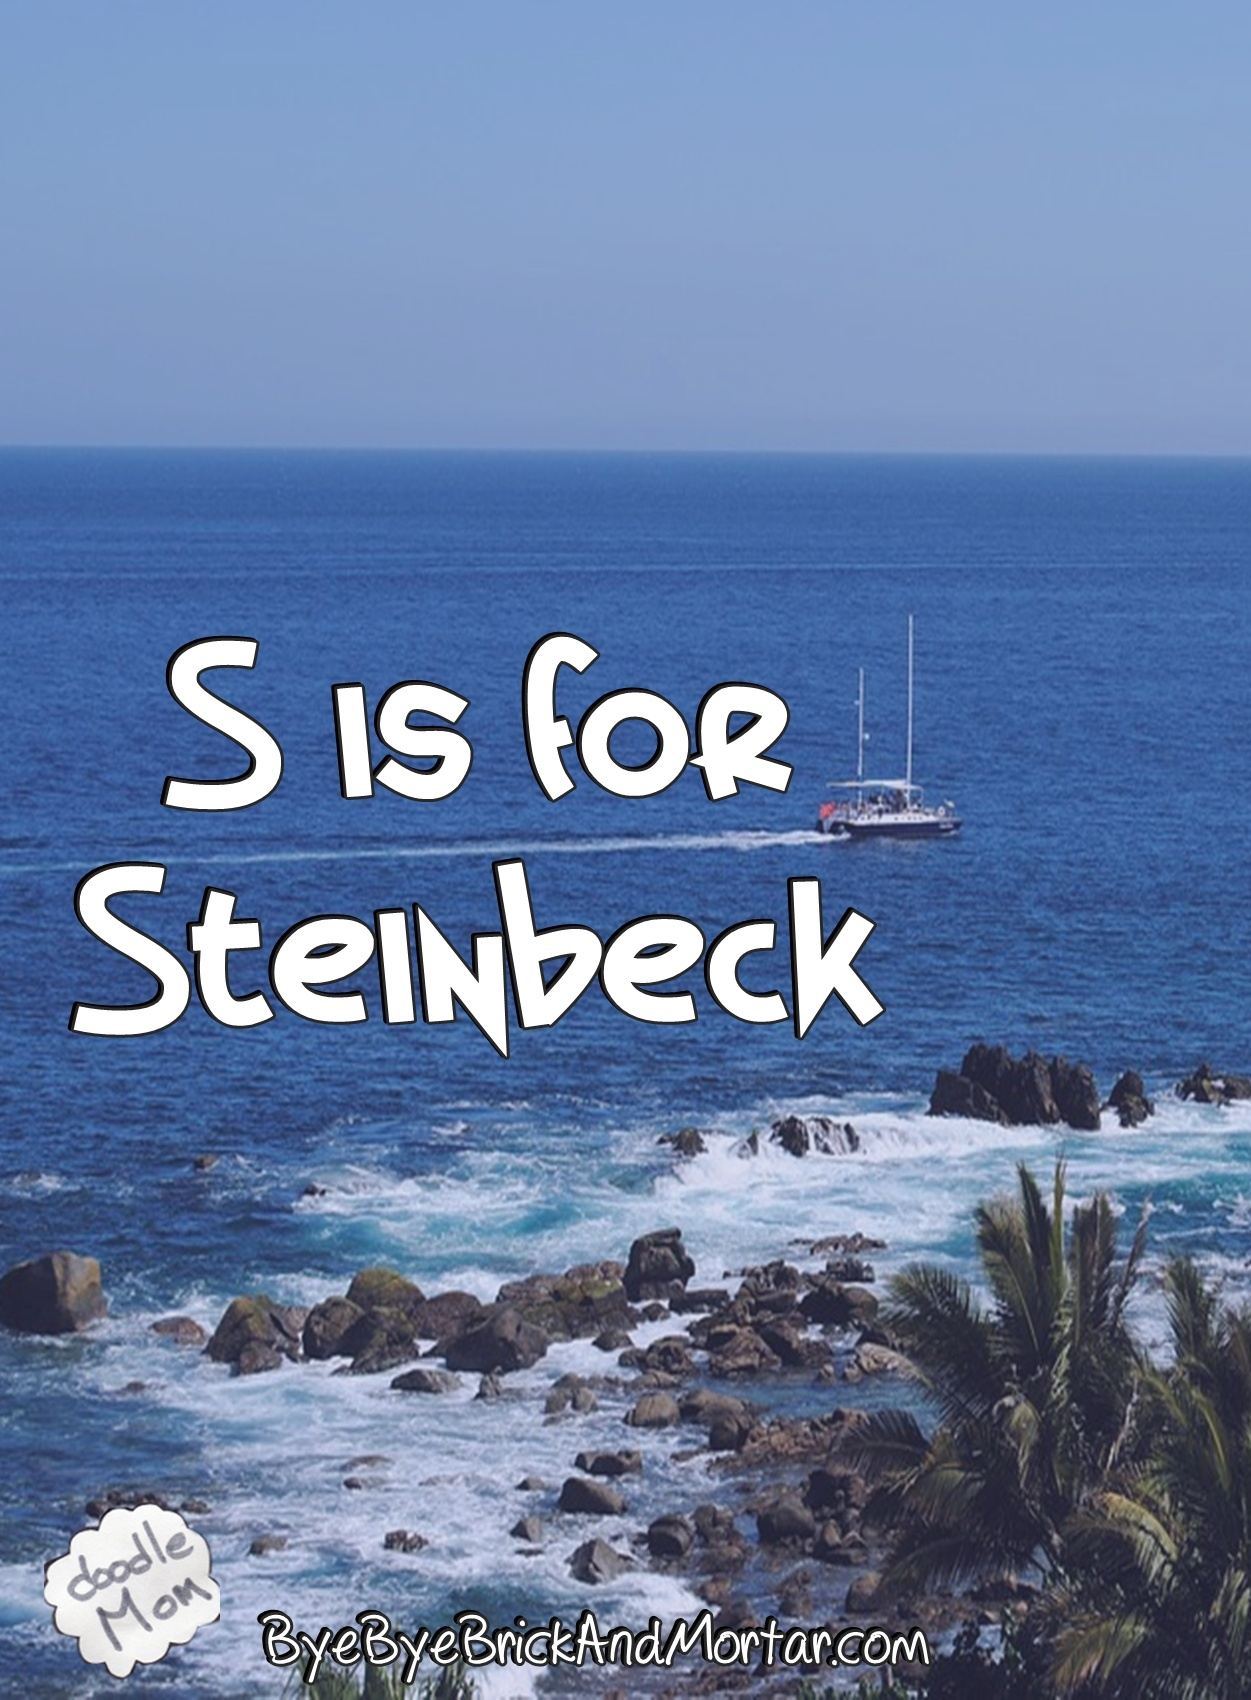 S is for Steinbeck